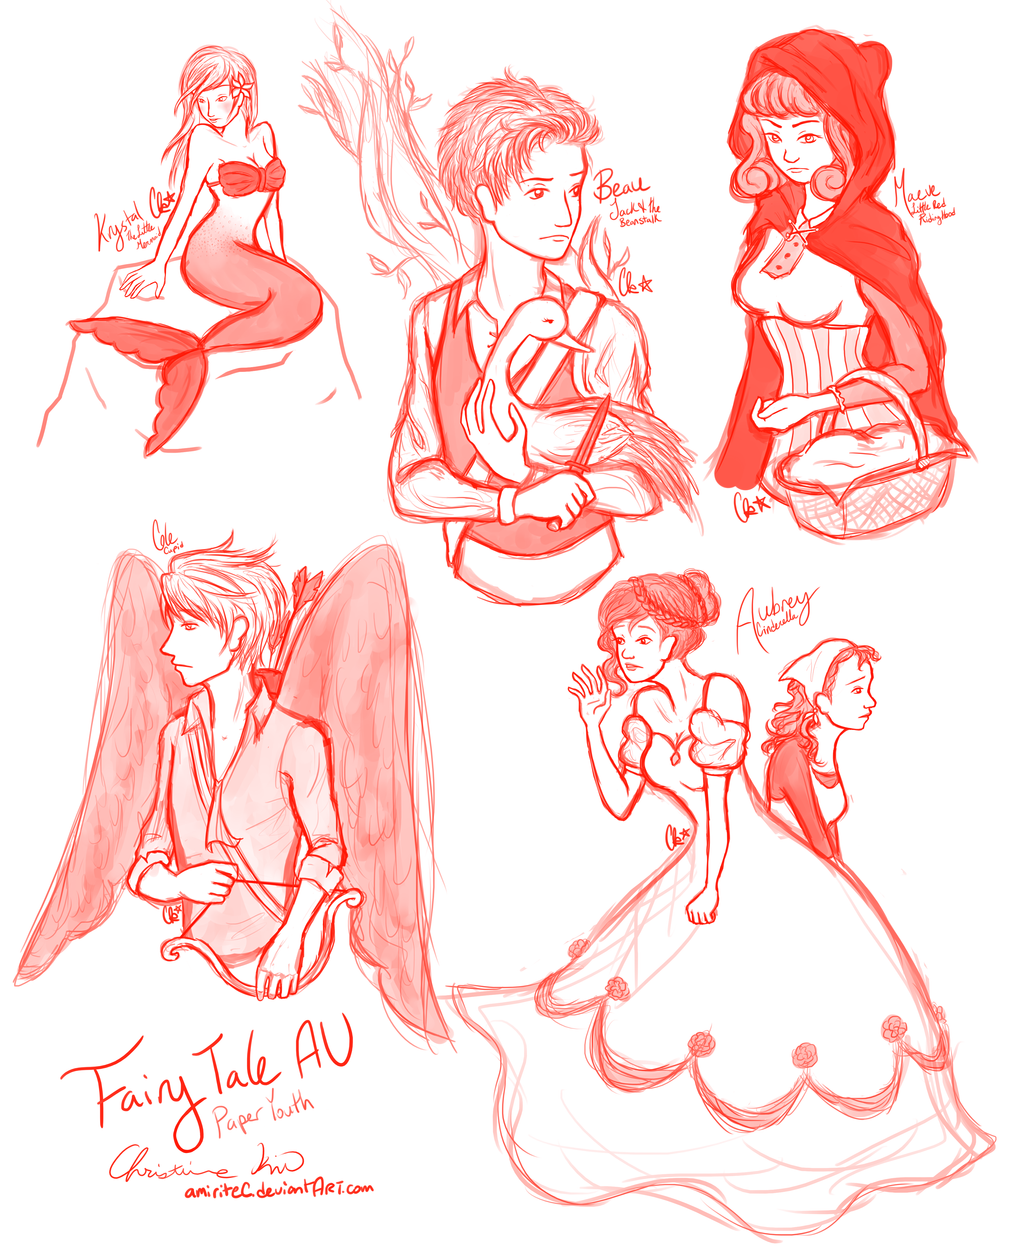 paper youth fairy tales au by amiritec on deviantart